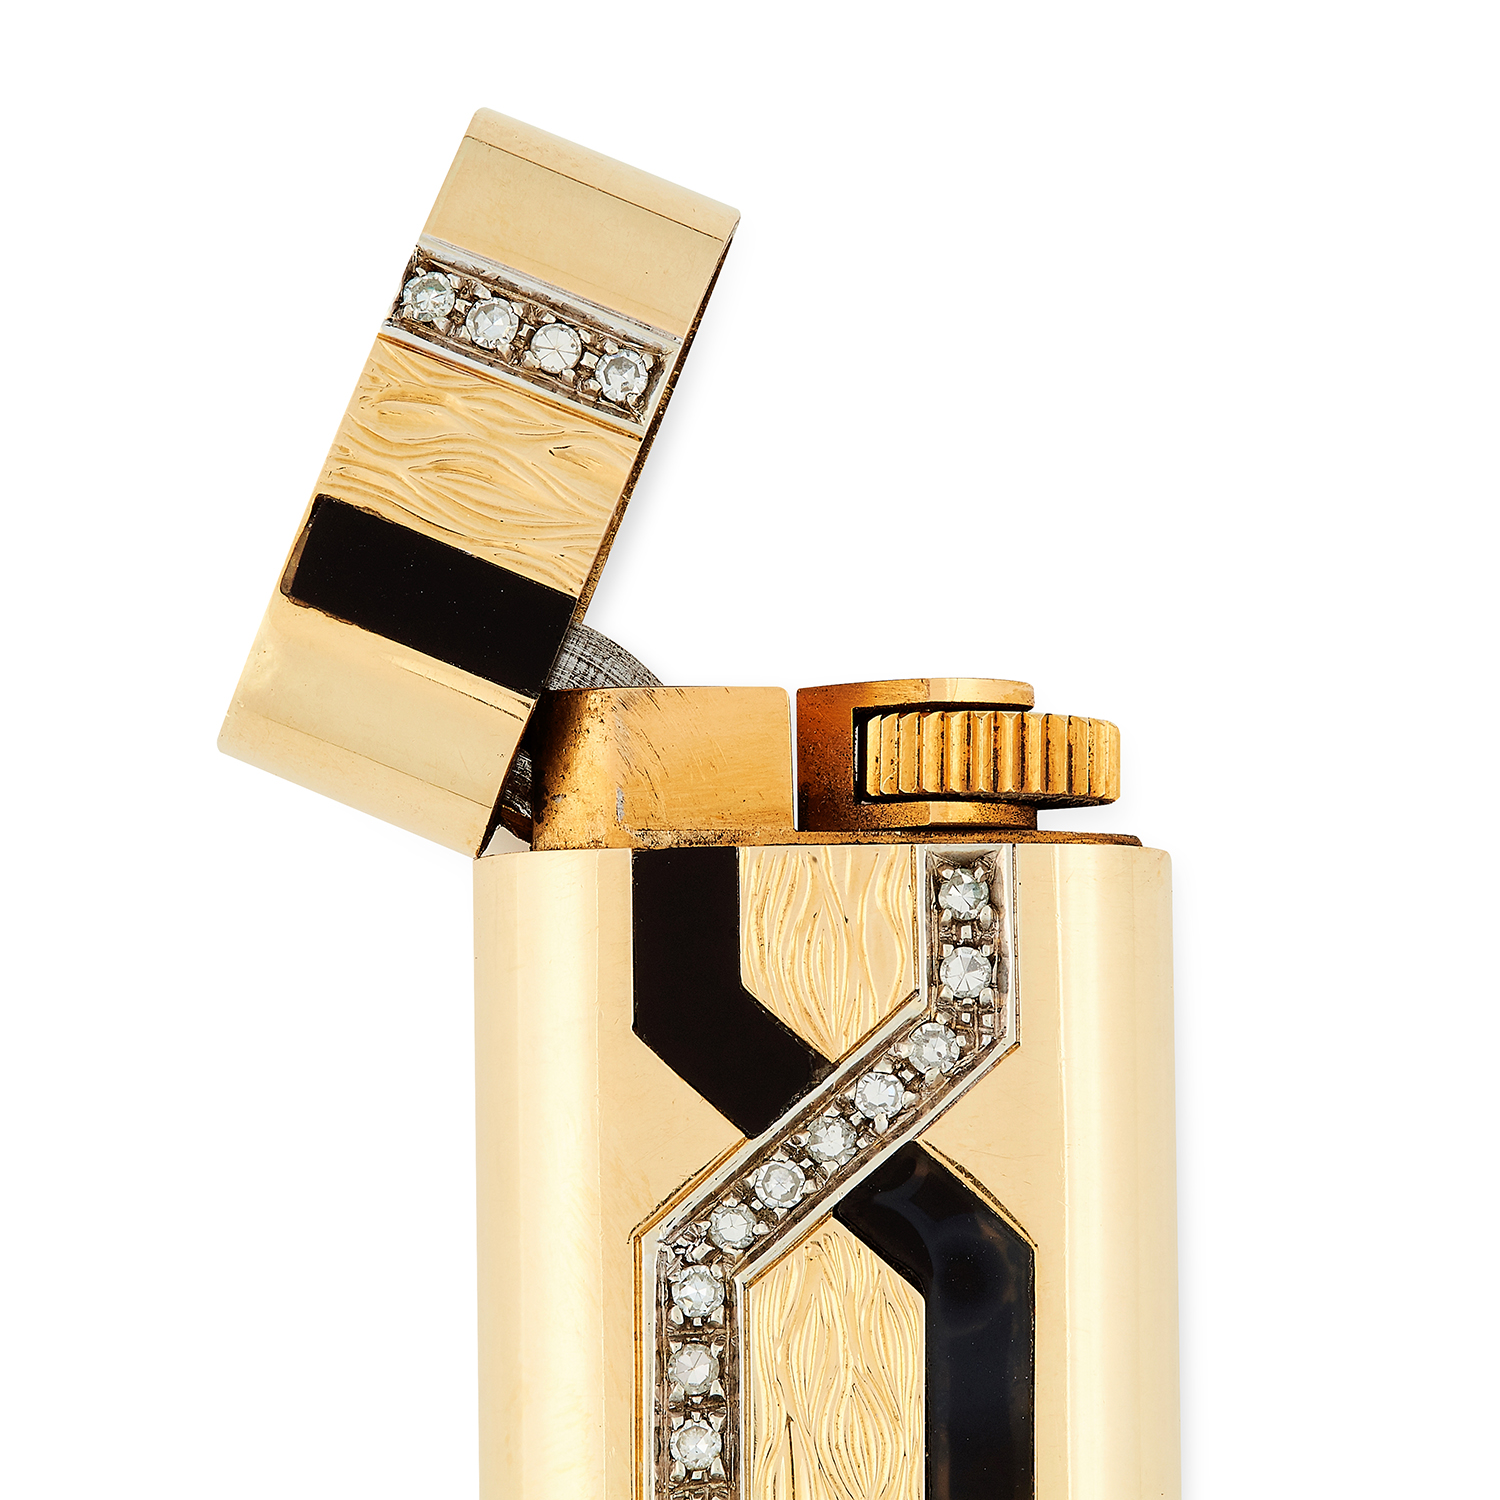 Los 92 - AN ONYX AND DIAMOND LIGHTER, CARTIER set with black enamel and round cut diamonds, signed Cartier